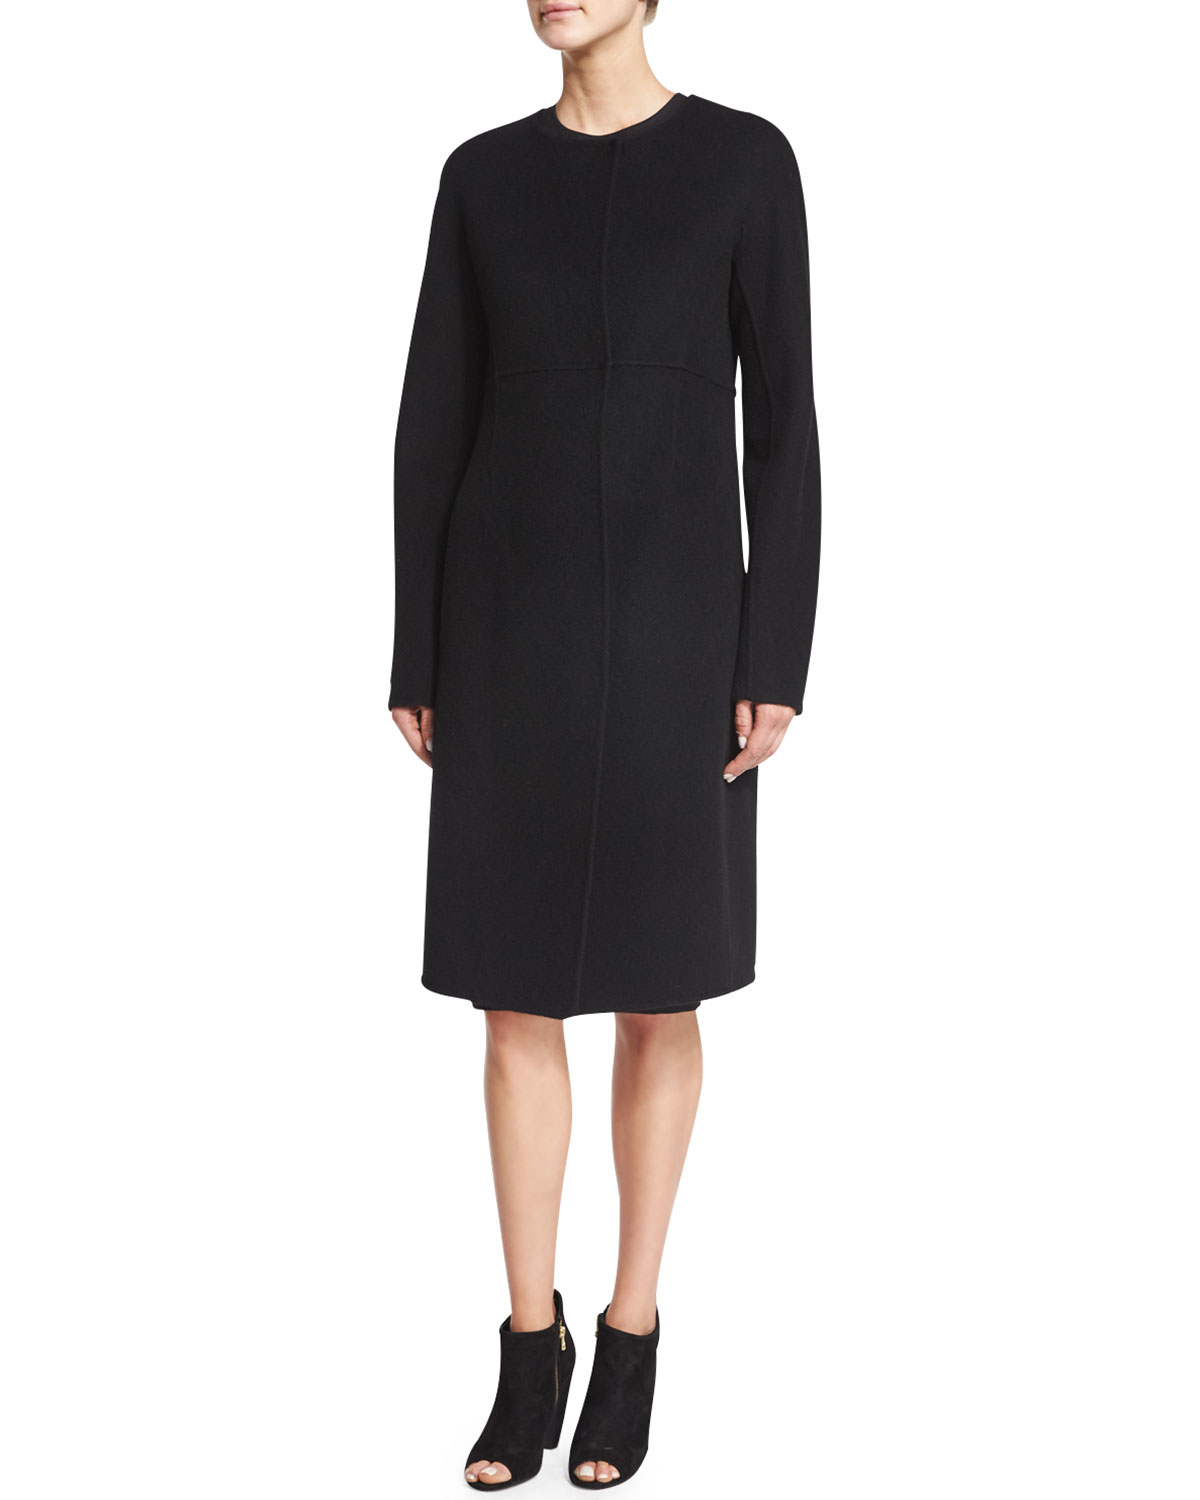 Donna karan Collarless Double-face Cashmere Coat in Black   Lyst